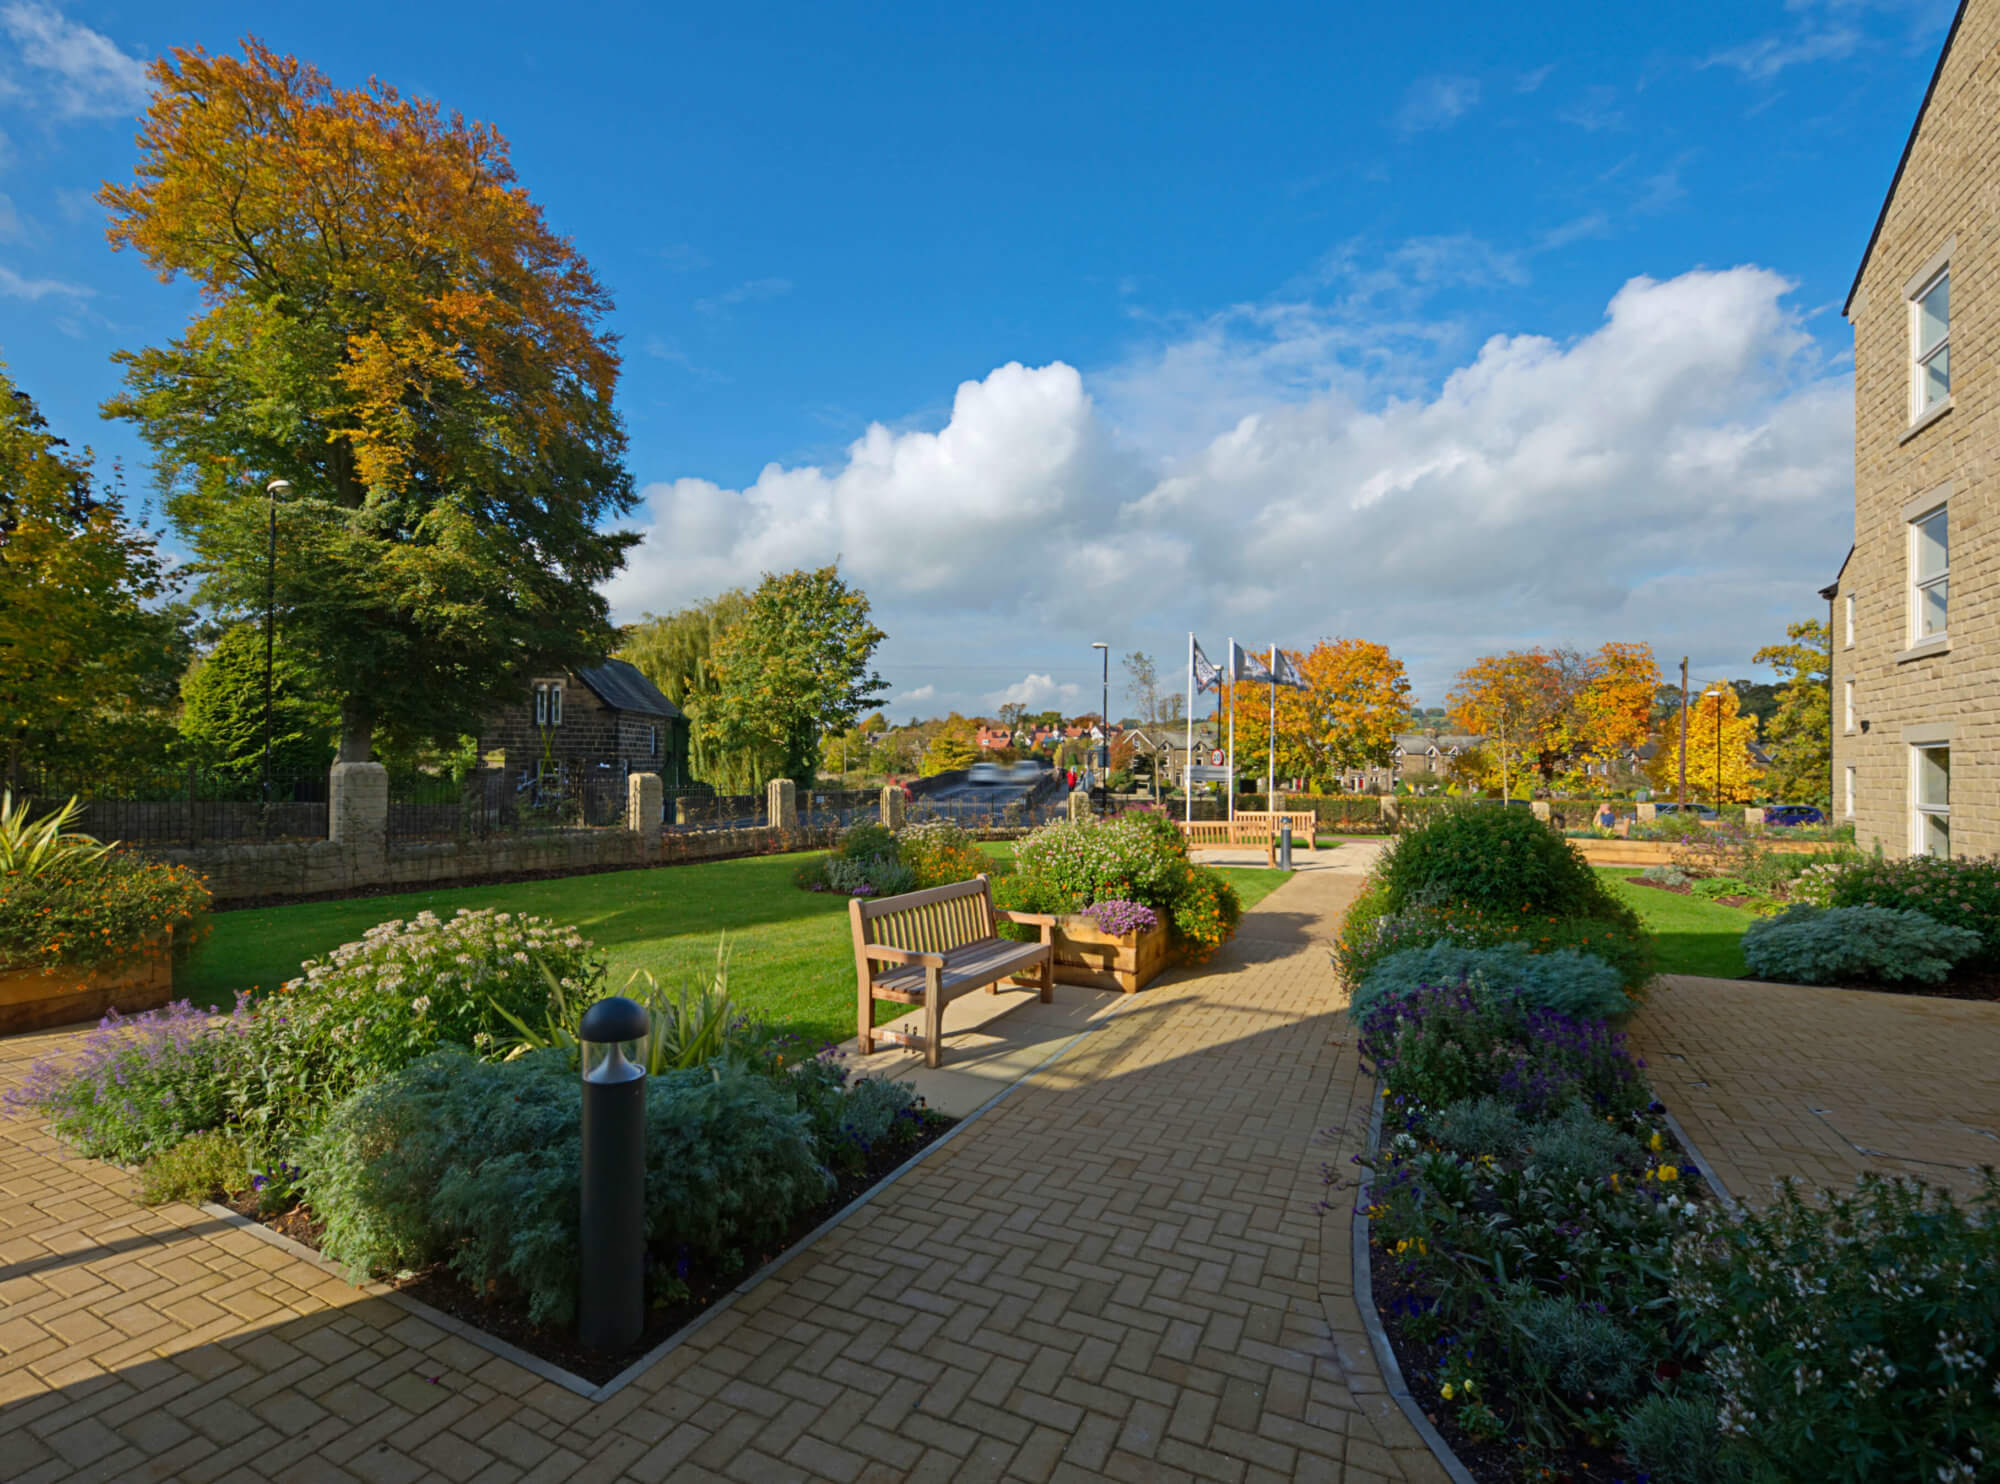 Retirement Apartments for Sale in Romiley, Stockport by ...